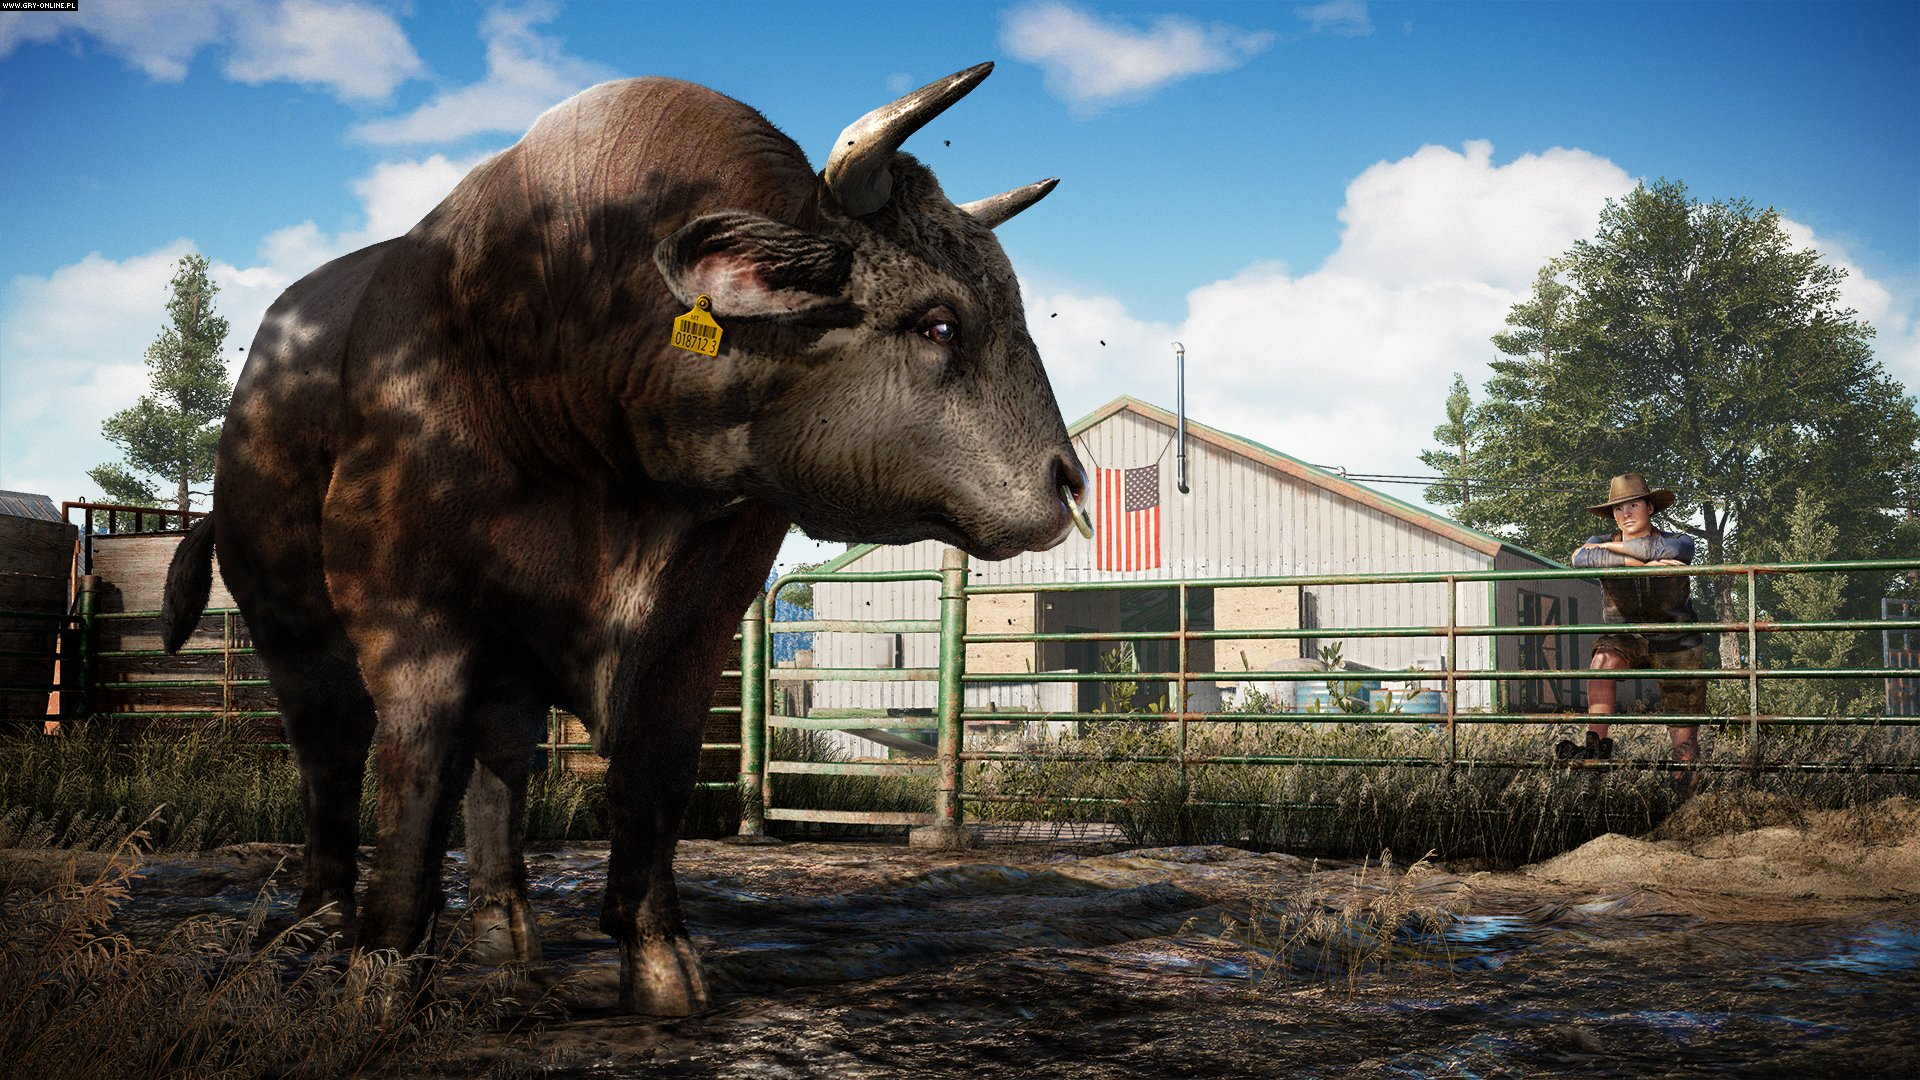 Far Cry 5 PC, PS4, XONE Games Image 25/25, Ubisoft